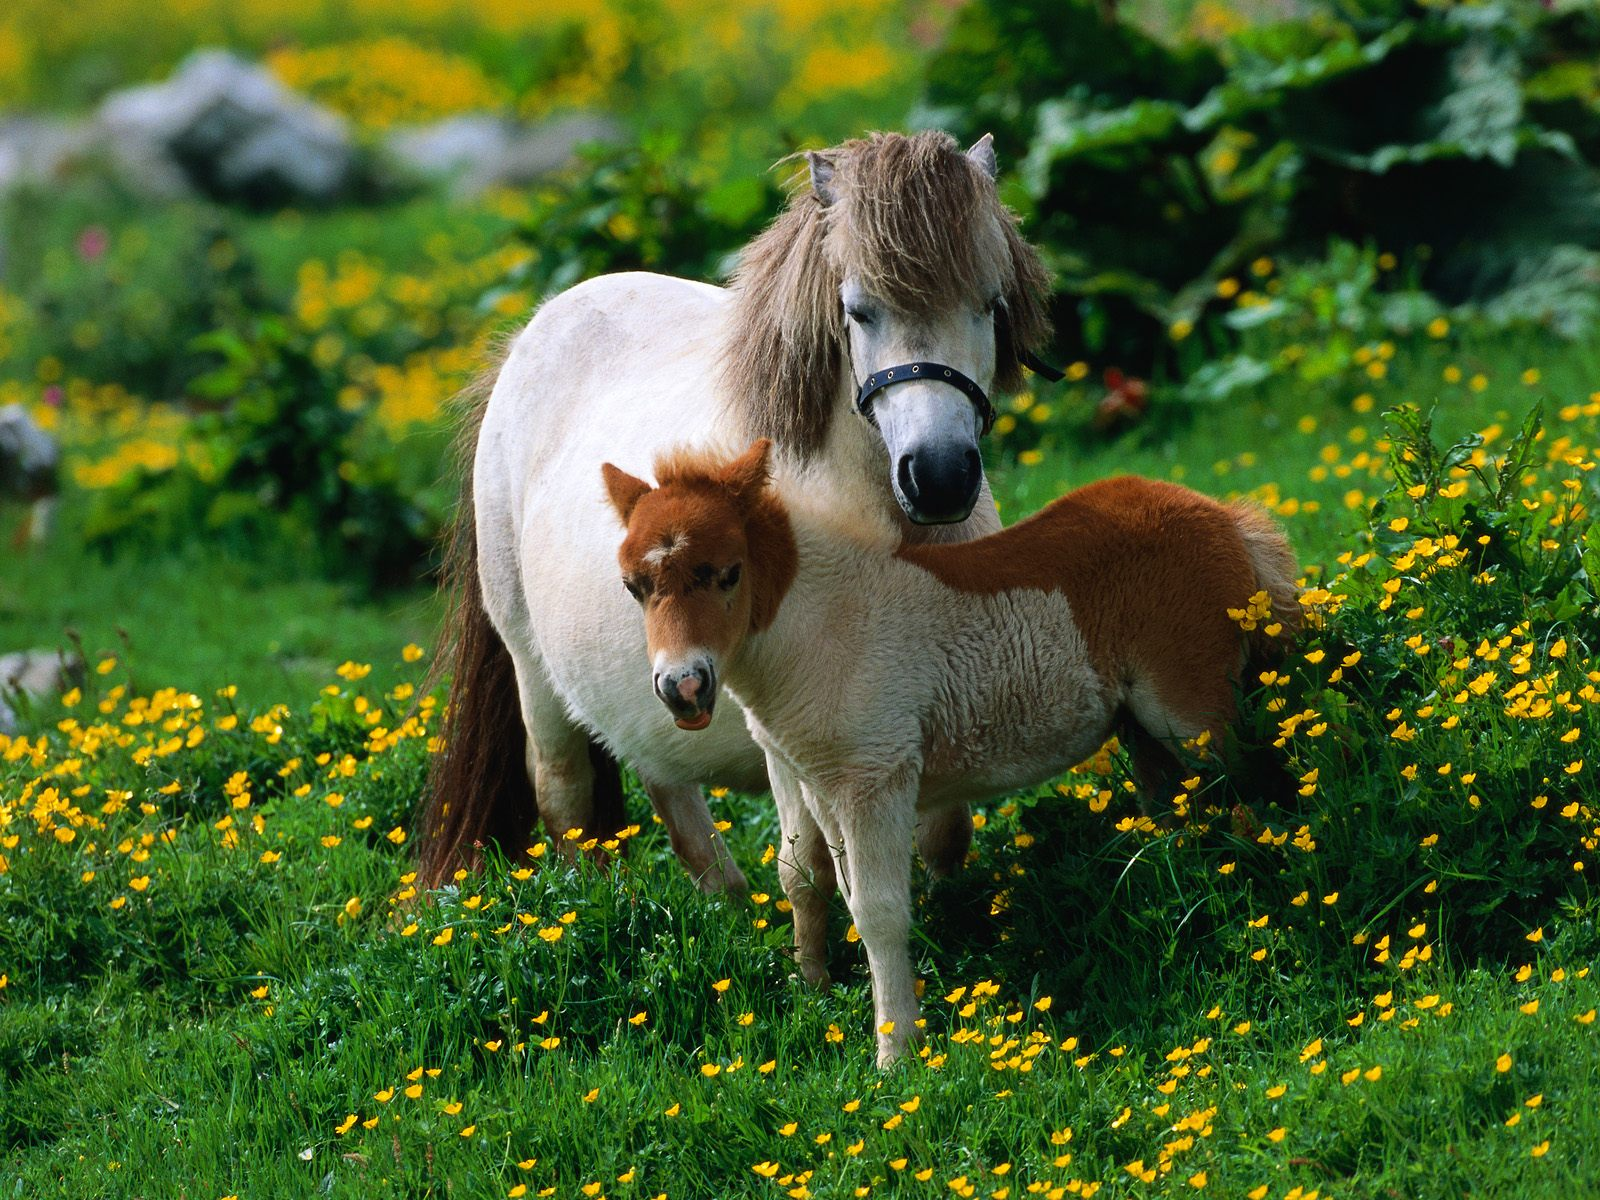 Bonding Moment With Horses